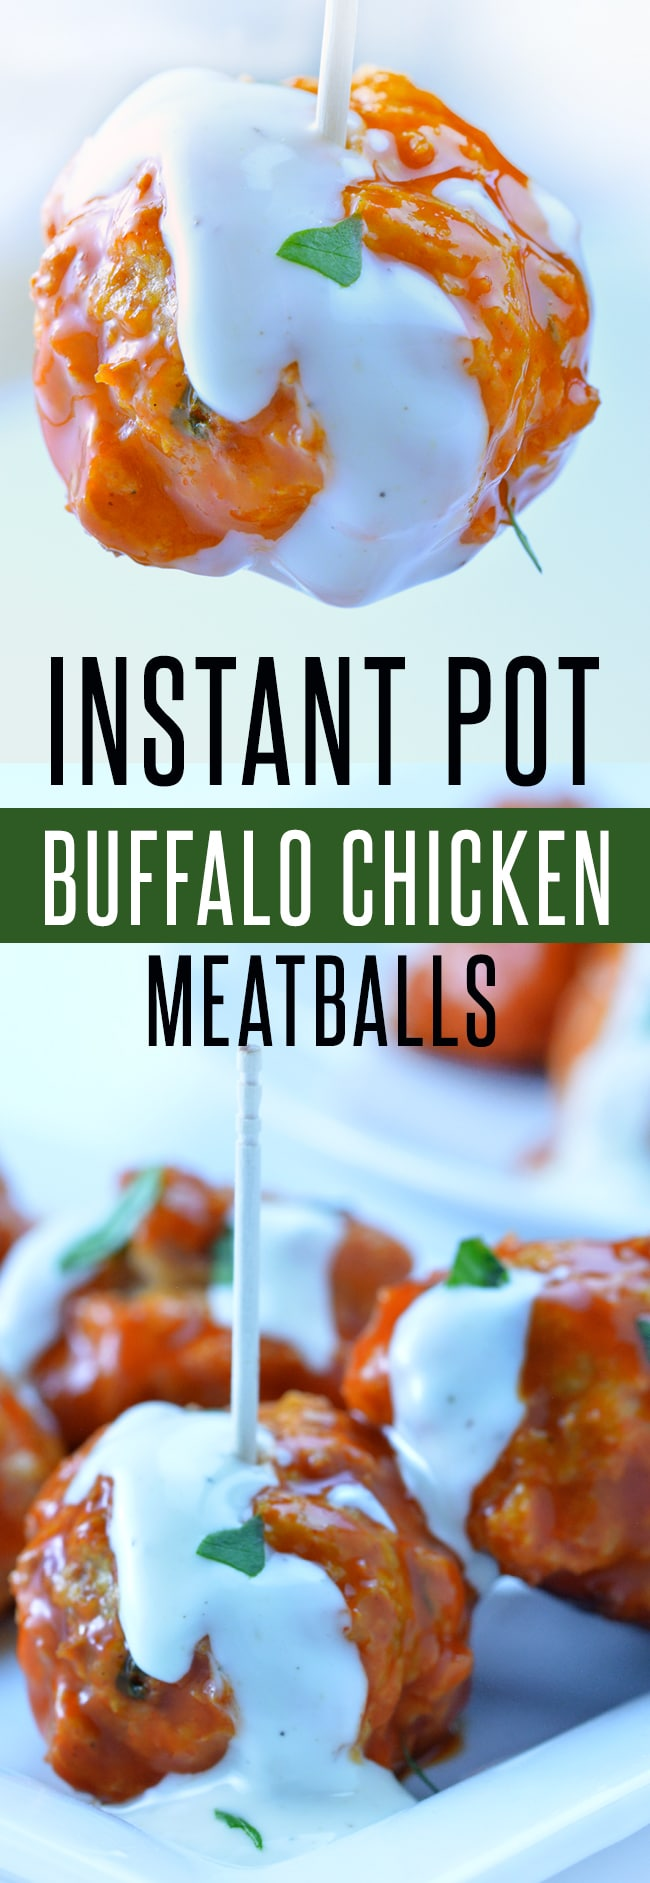 Easy Buffalo Chicken Meatballs made in the oven, slow cooker or Instant Pot. Ready in as little as 20 minutes! Perfect game day appetizer or low calorie meal. | foodieandwine.com #appetizer #chicken #meatballs #heathlyrecipe #30minutemeals #instantpot #instantpotrecipes